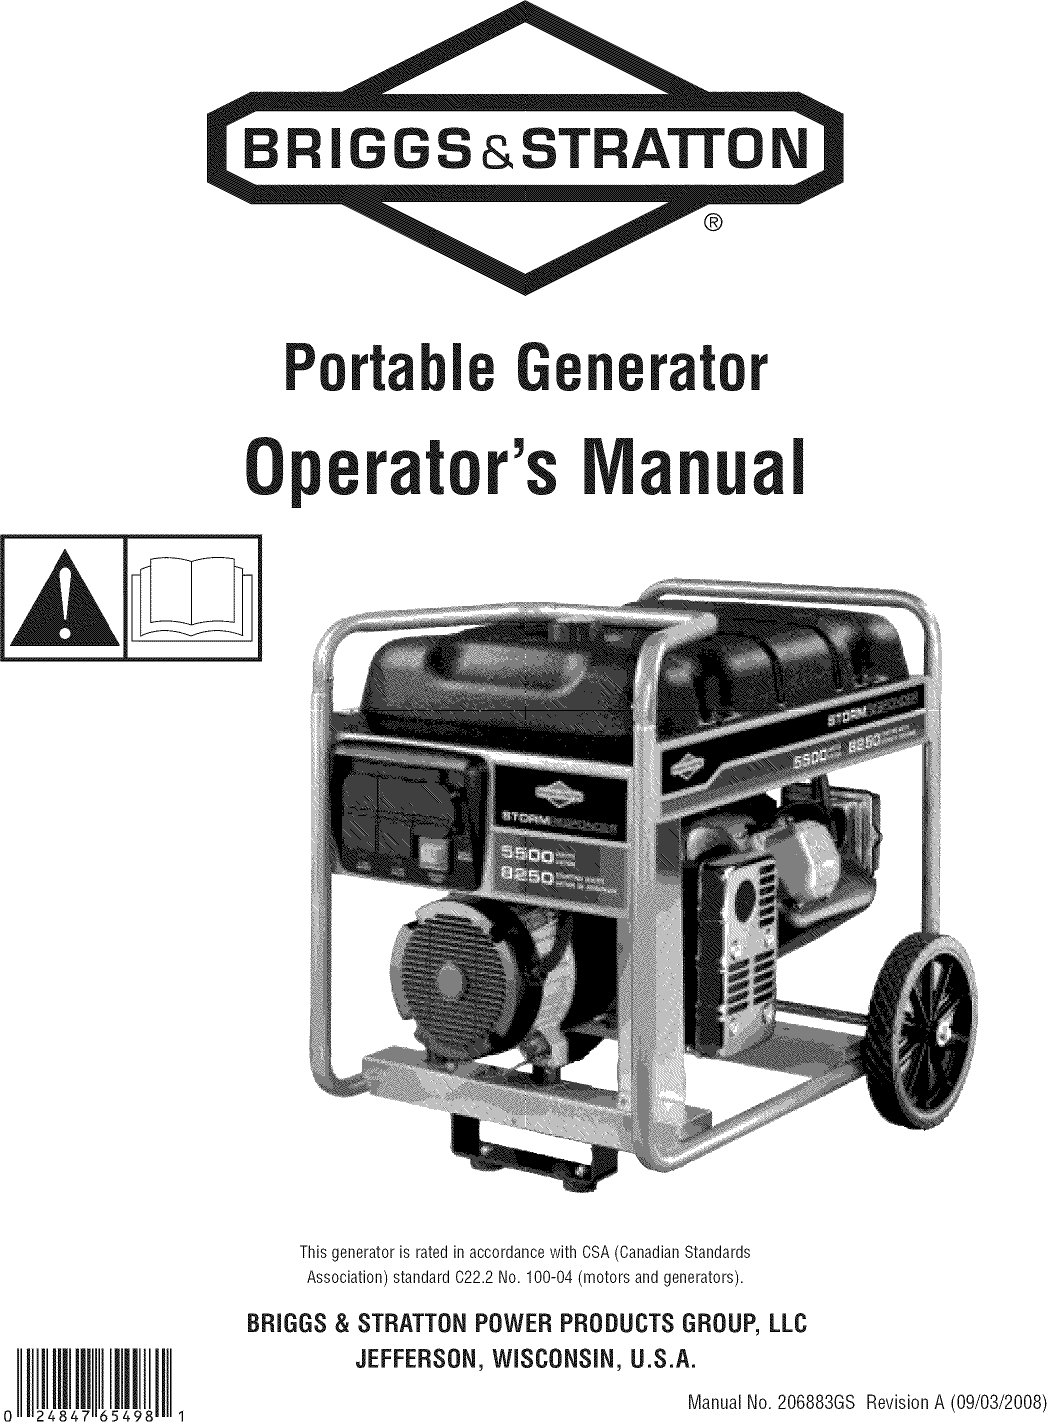 Briggs & Stratton 030430 User Manual GENERATOR Manuals And